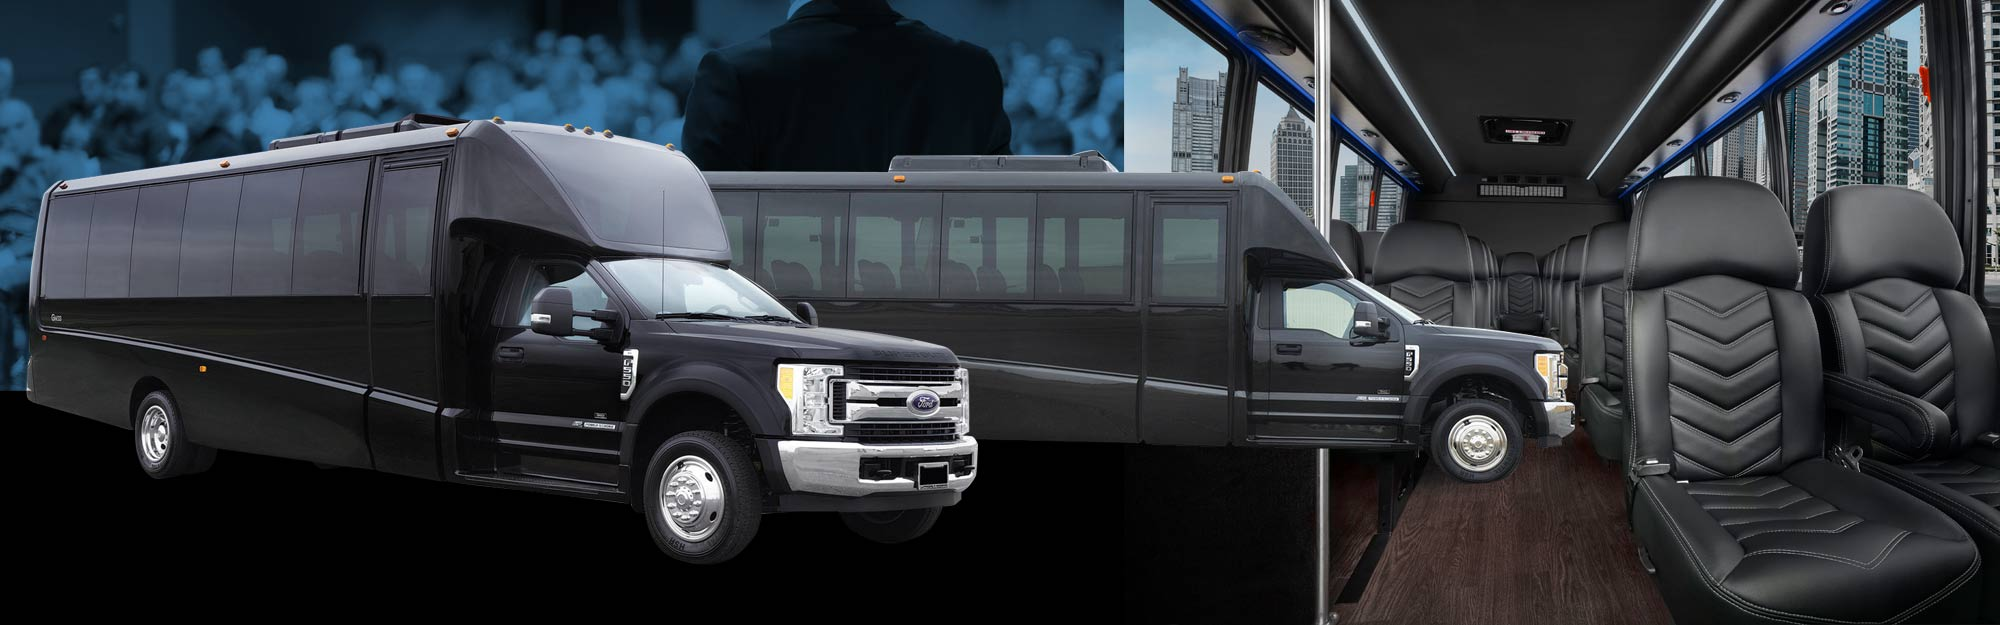 DENVER CONVENTION CENTER EXECUTIVE SHUTTLE MINIBUS BUS COACH SERVICES